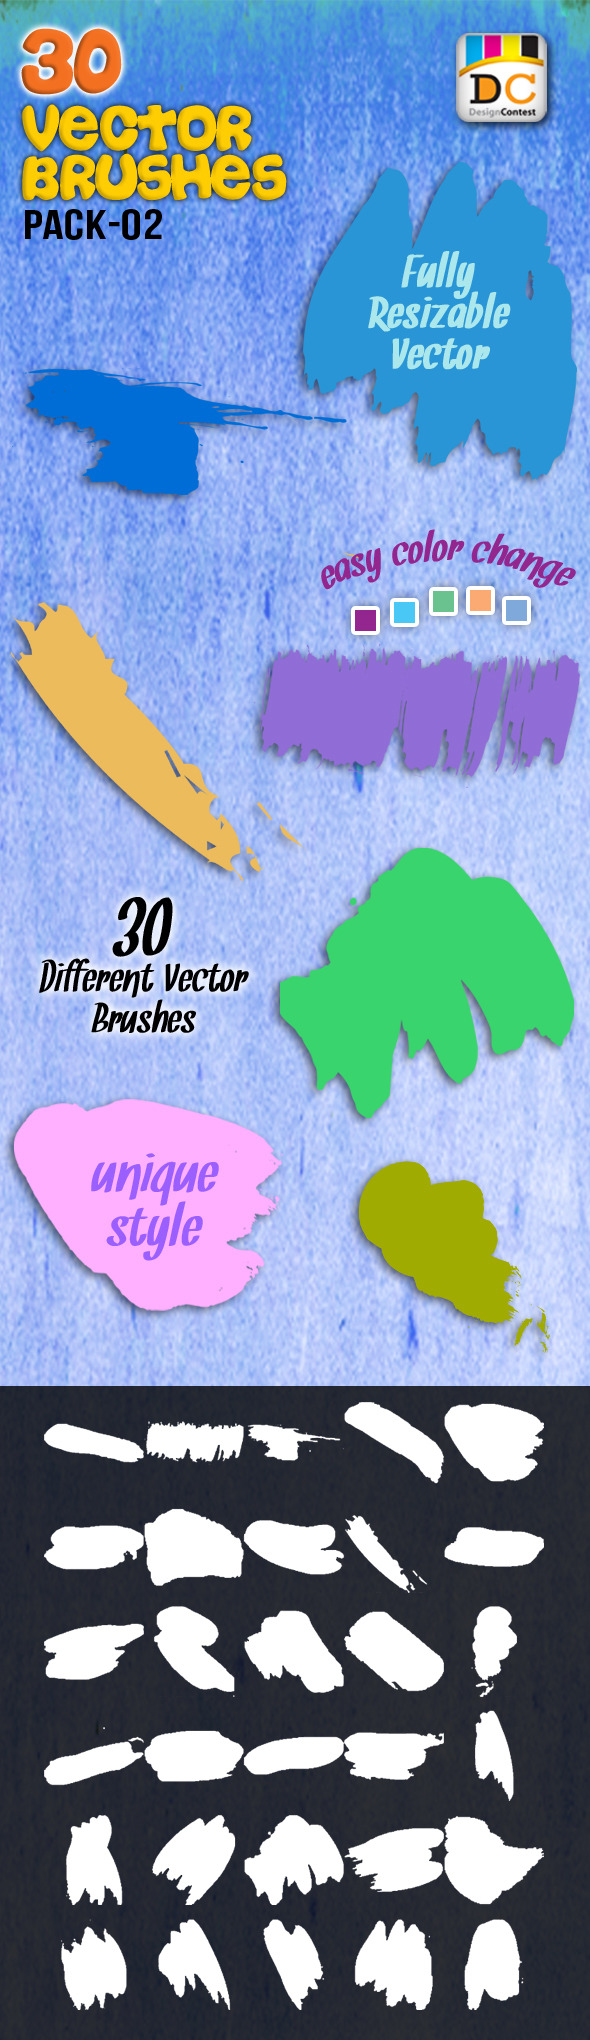 30 Special Vector Art Brushes_Pack 02 - Artistic Brushes